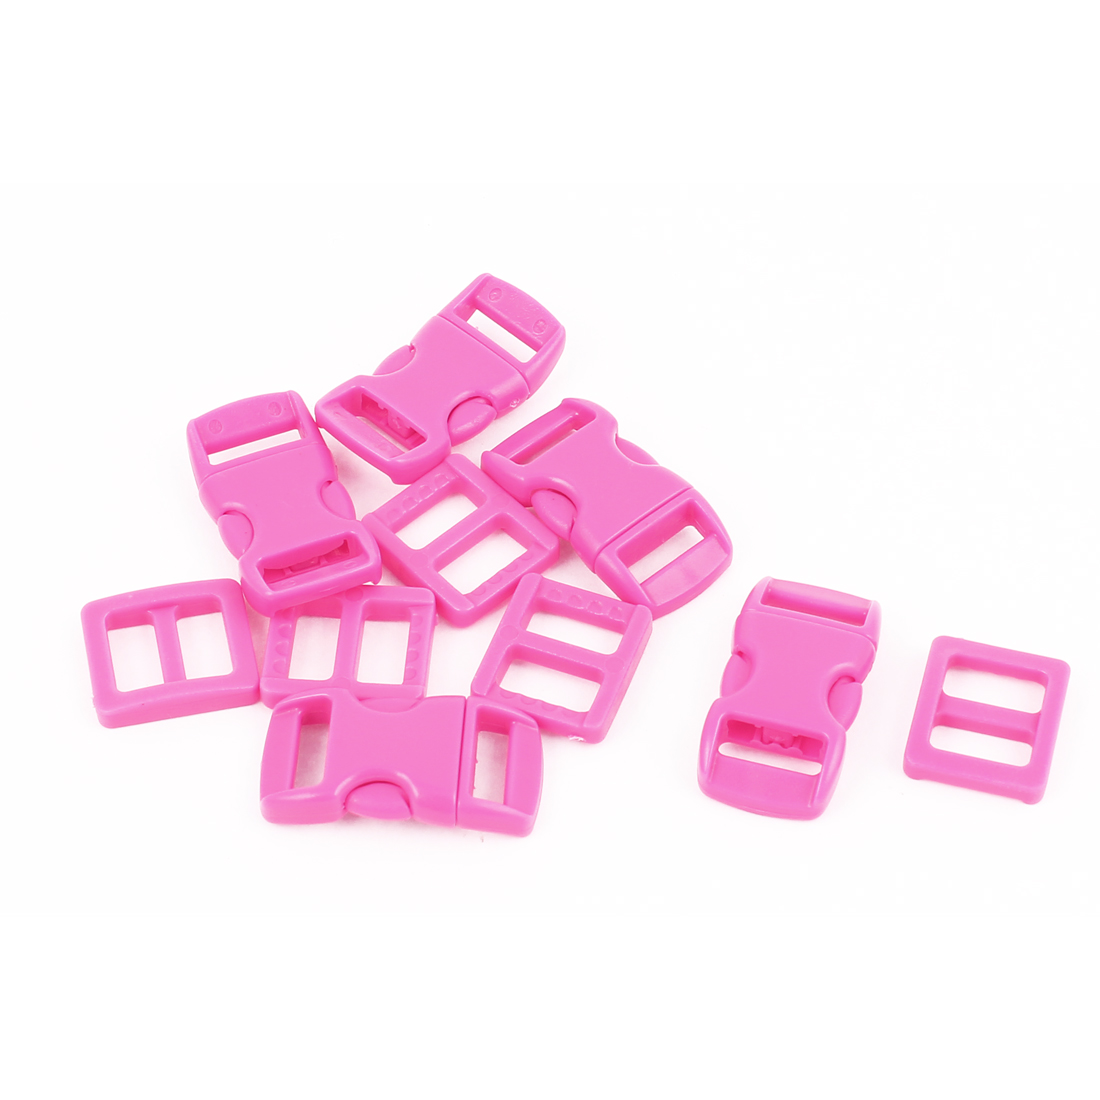 5pcs Fuchsia 10-11mm Webbing Band Plastic Curved Clasp Side Quick Release Buckles